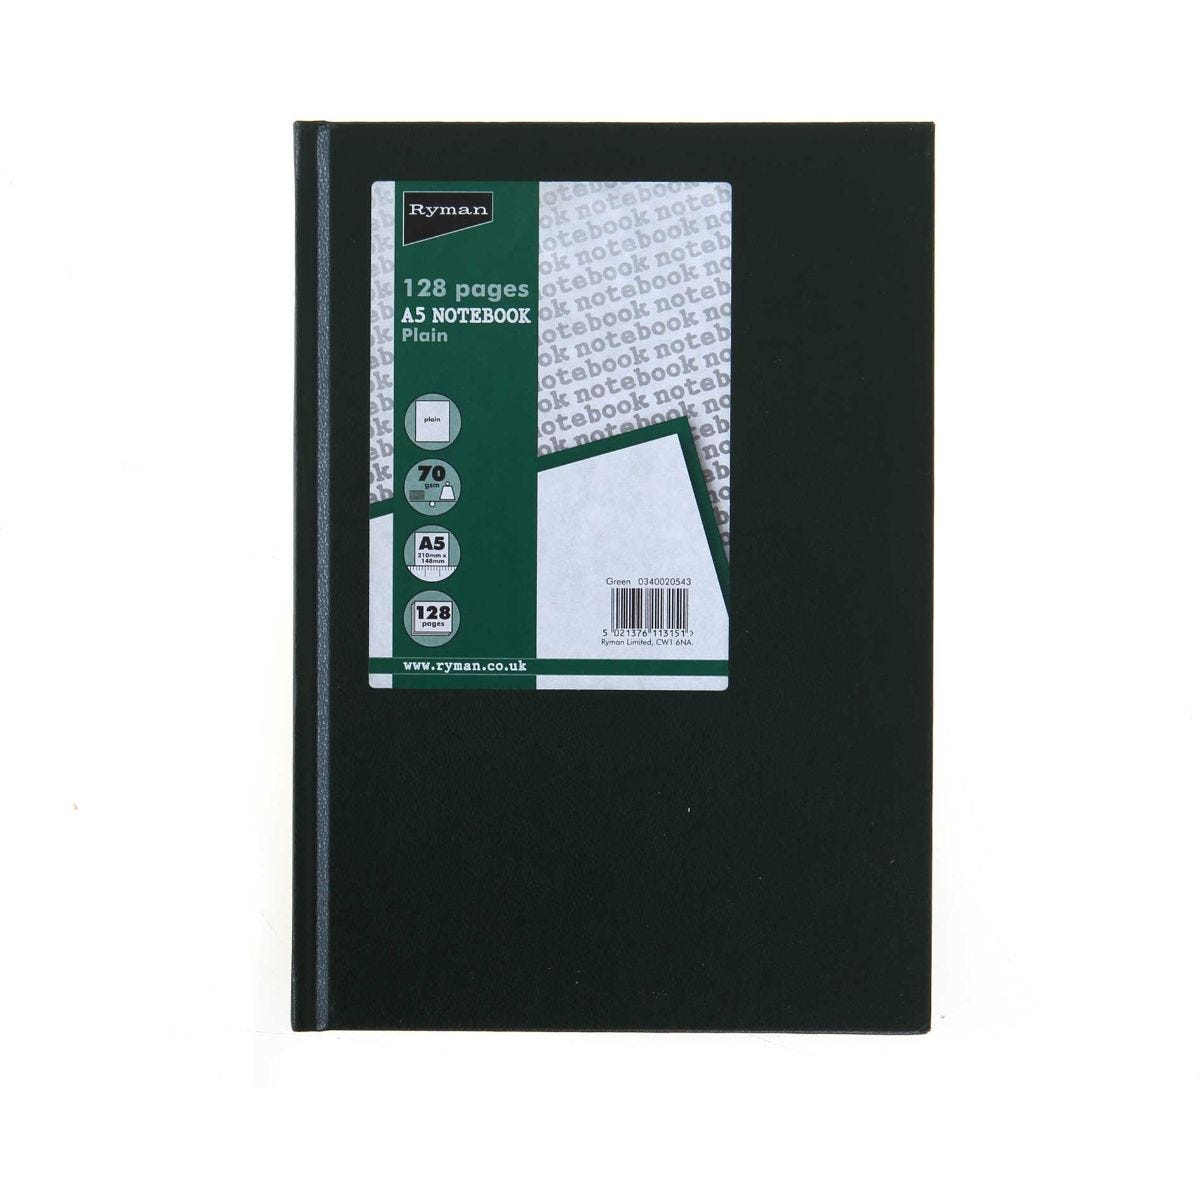 Ryman Case bound Memo Book Plain A5 128 Pages 70gsm, Green.